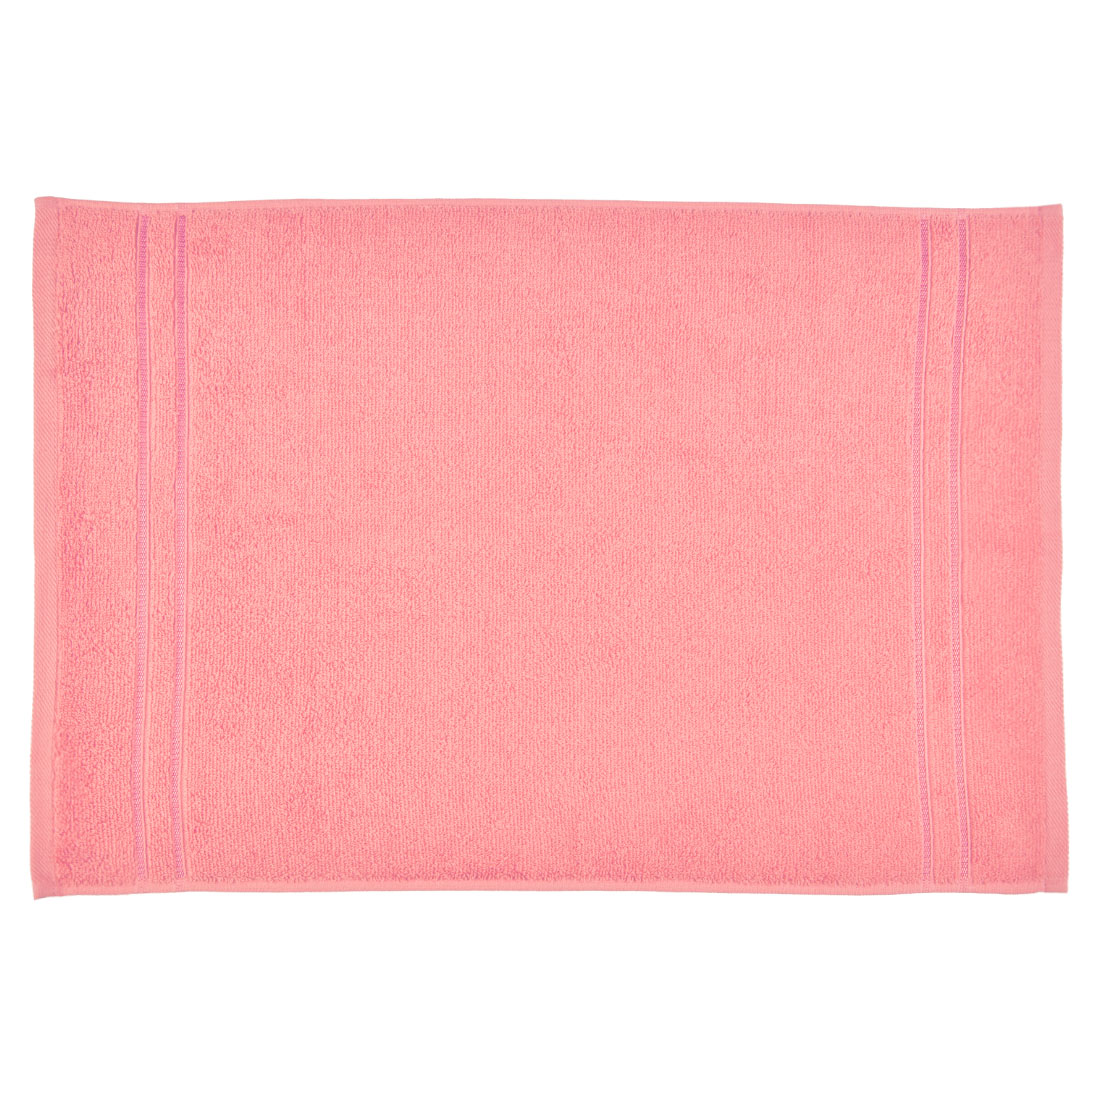 Hand Towel Nora Rose Cotton Hand Towels in Cotton Colour by Living Essence